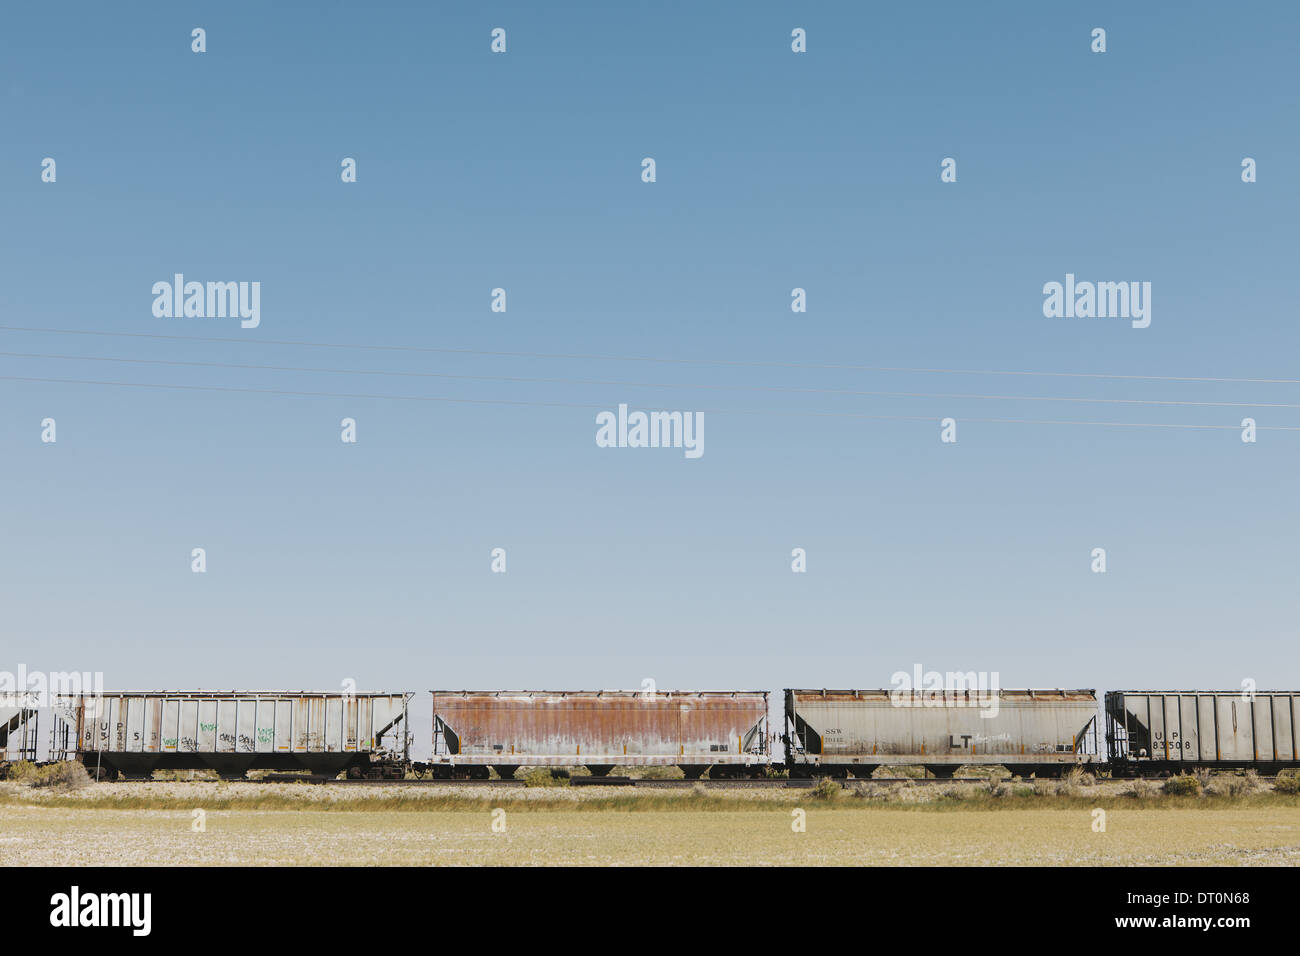 Black Rock Desert Nevada USA Wagons of train crossing the Black Rock Desert - Stock Image